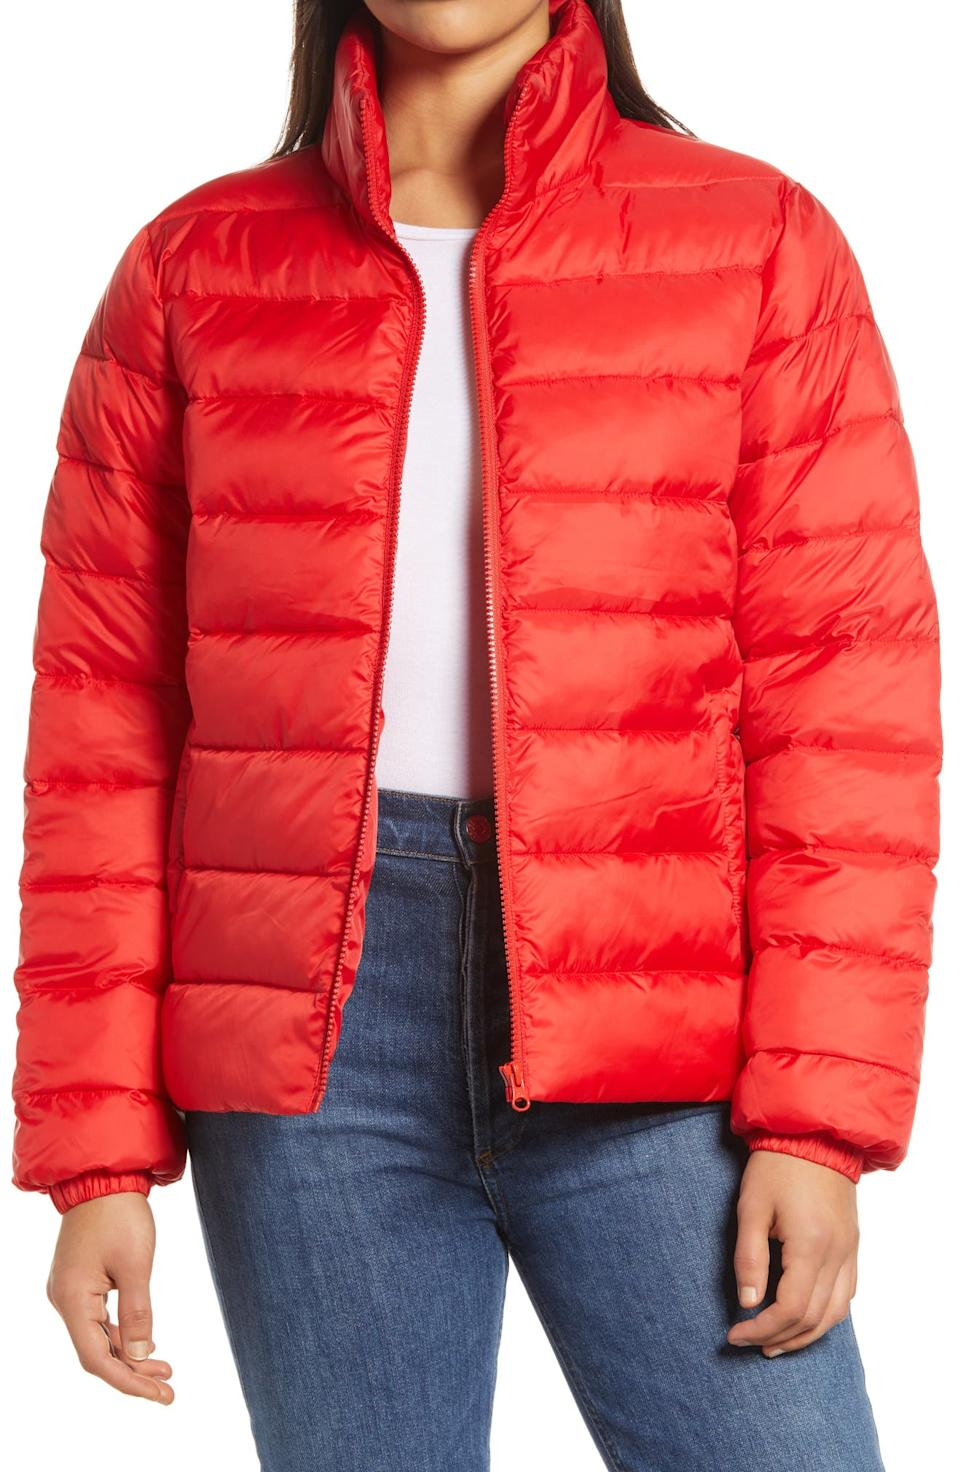 Zip Puffer Coat. Image via Nordstrom.